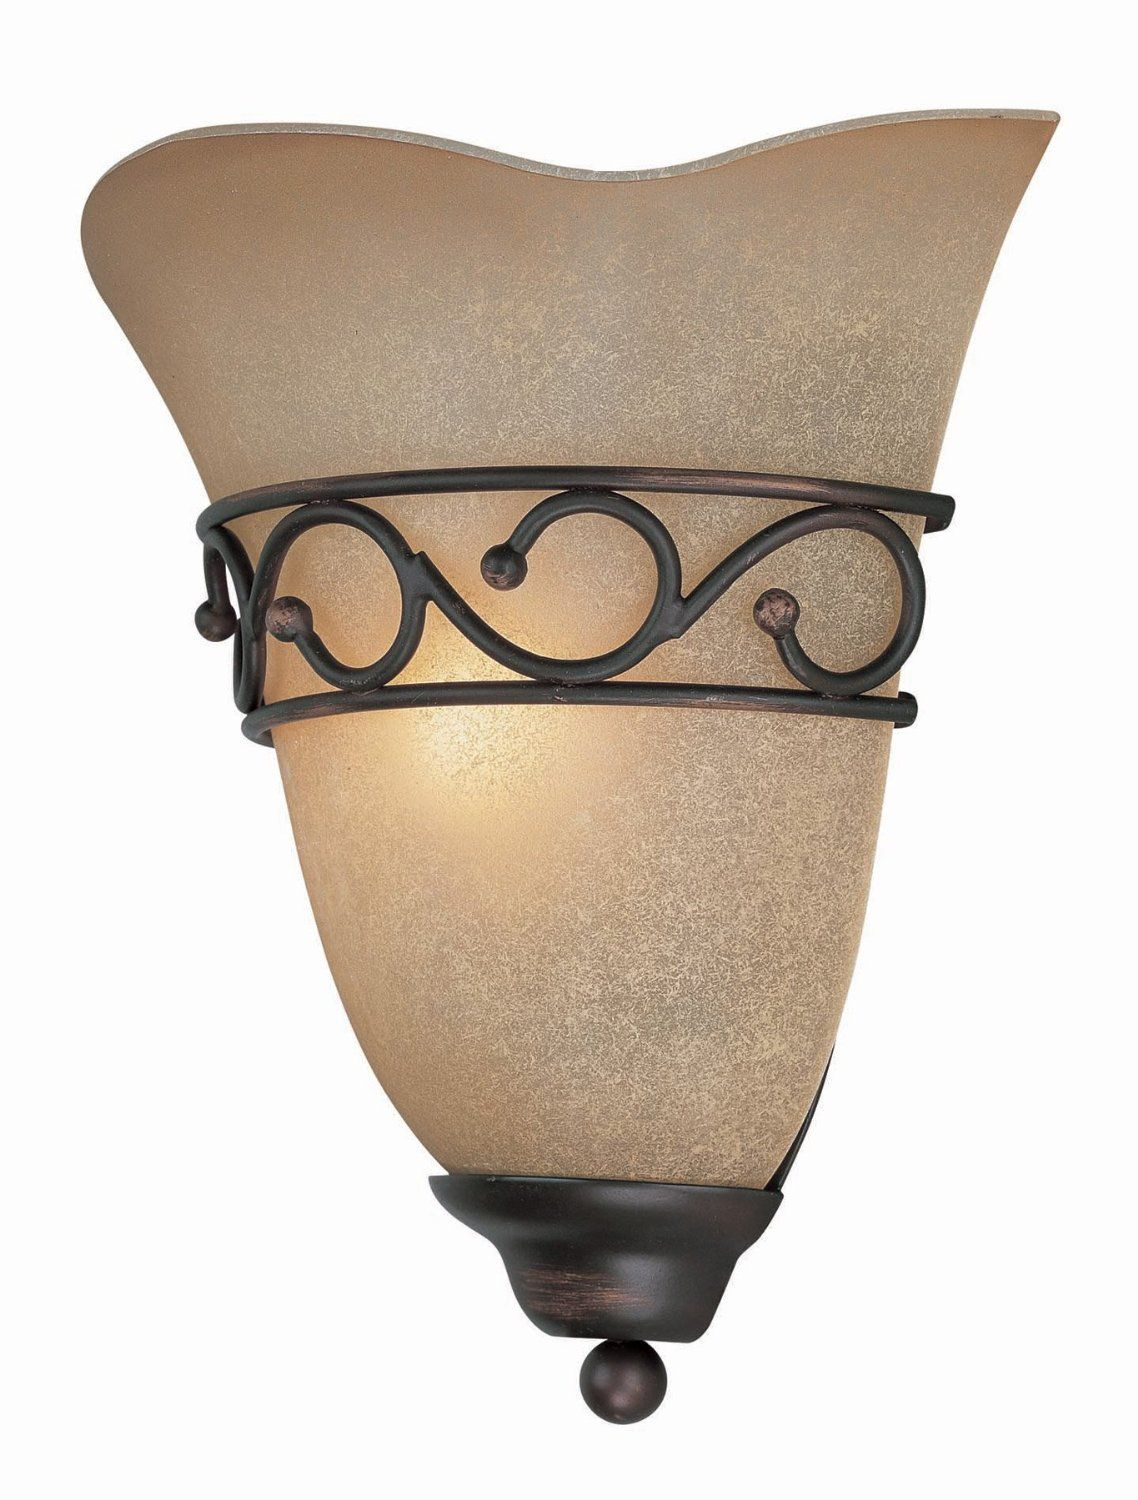 Likeness of battery operated sconce interior design ideas likeness of battery operated sconce light wallslight brownswall amipublicfo Gallery